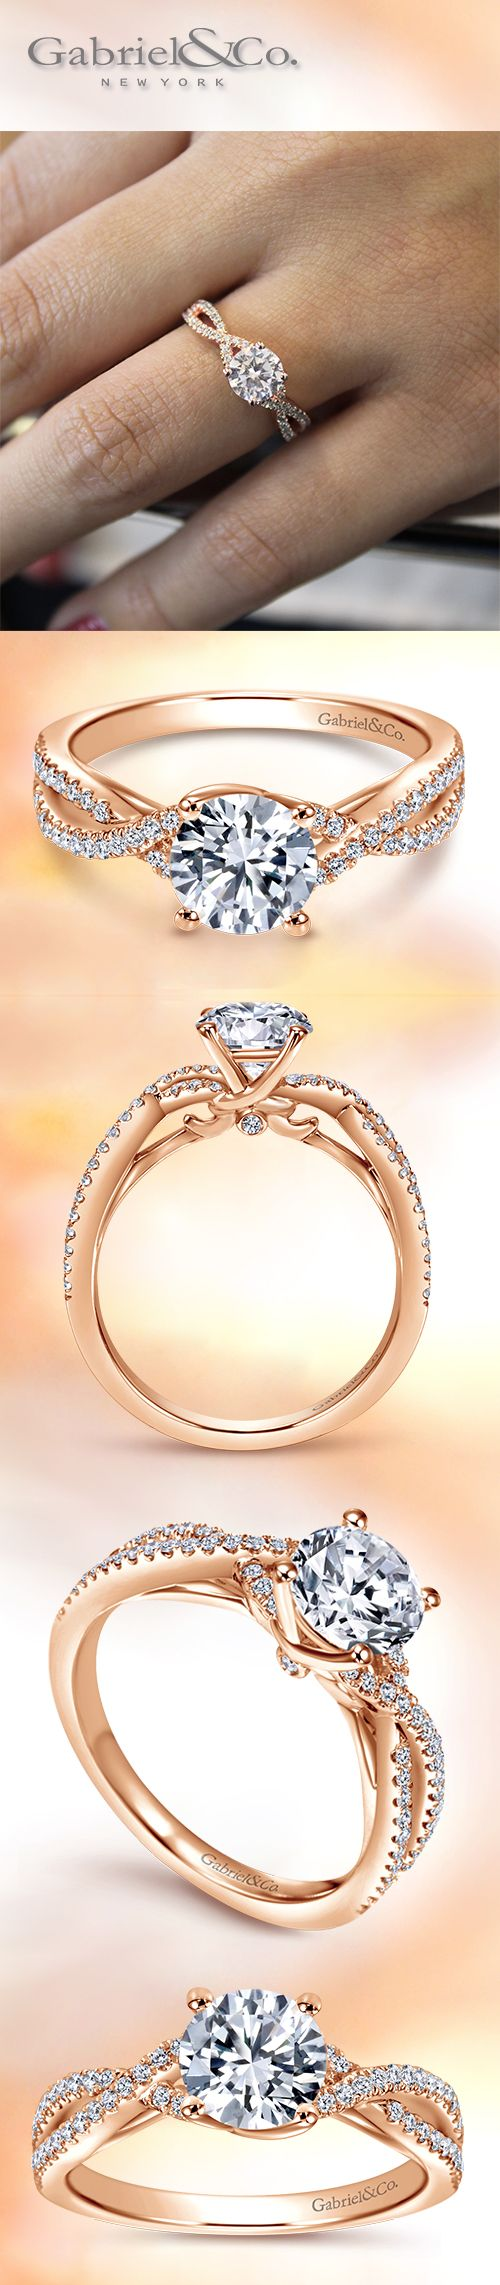 Gabriel & Co. - Voted #1 Most Preferred Jewelry Designer. A contemporary 14k Pink Gold Round-Cut Diamond Engagement Ring encrusted with pavé diamonds on its twisted design.